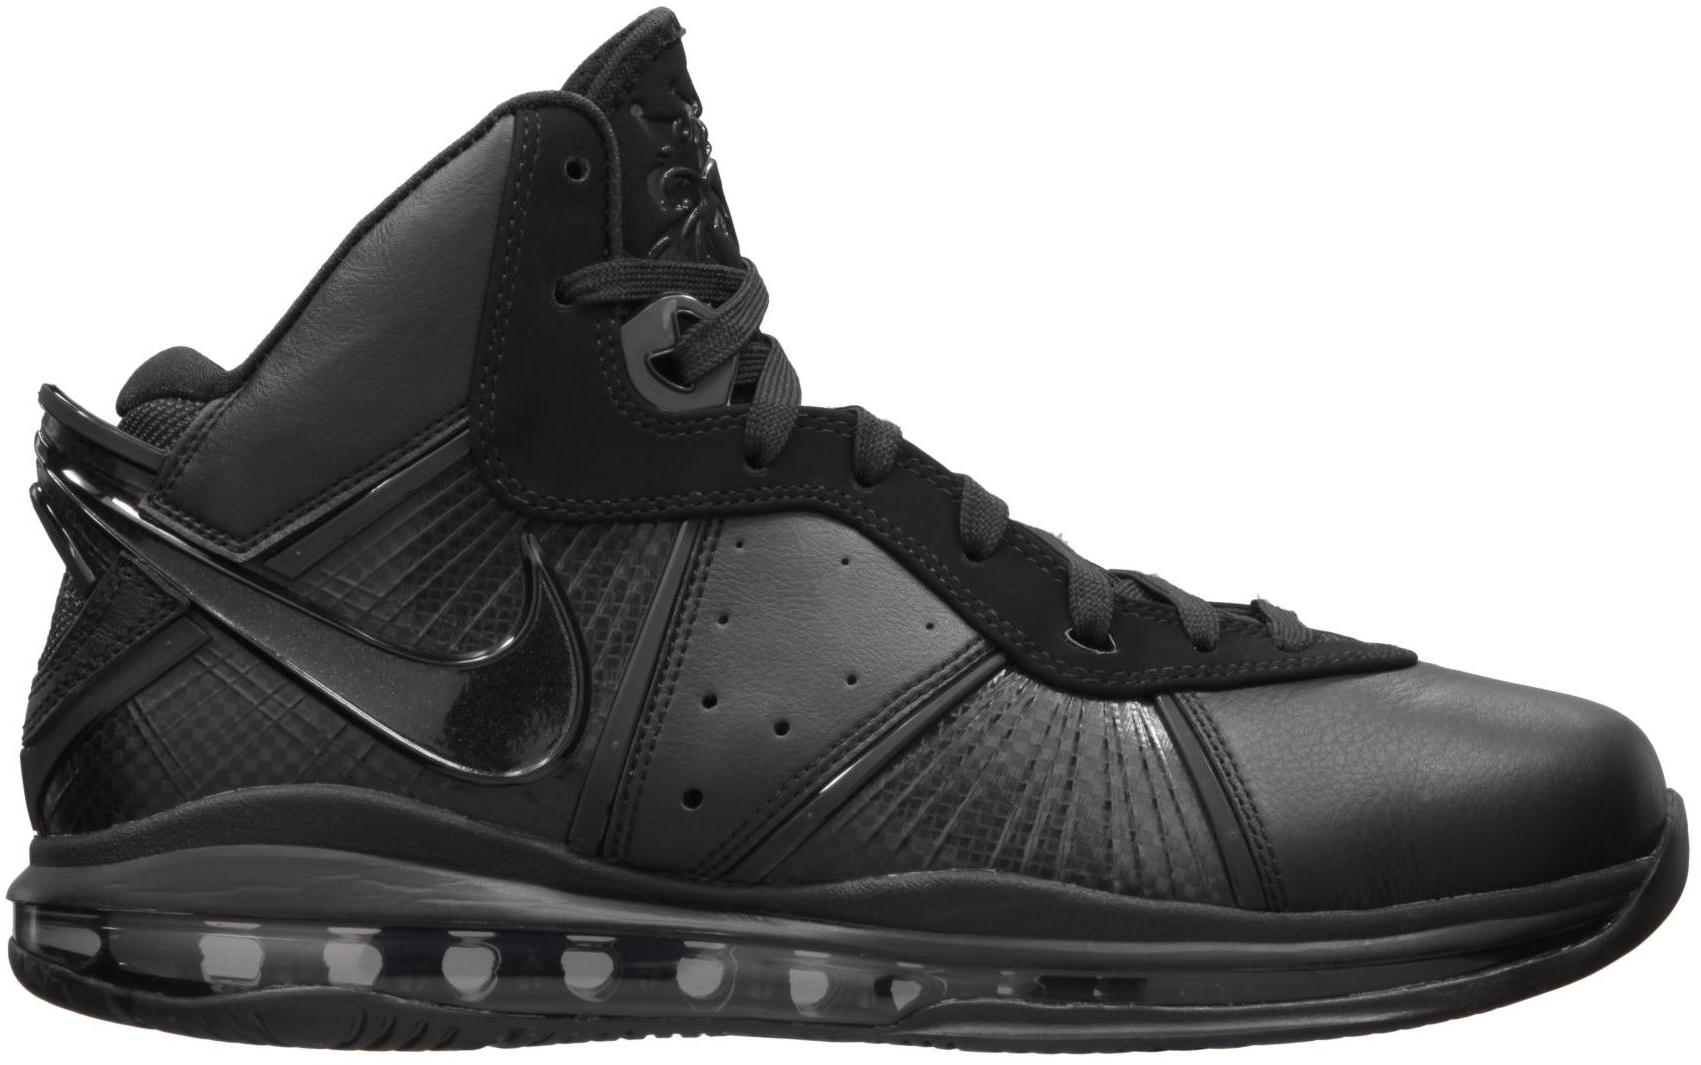 Buy 178315 Nike Air Max Lebron 8 Men Blackout Black Anthracite Shoes